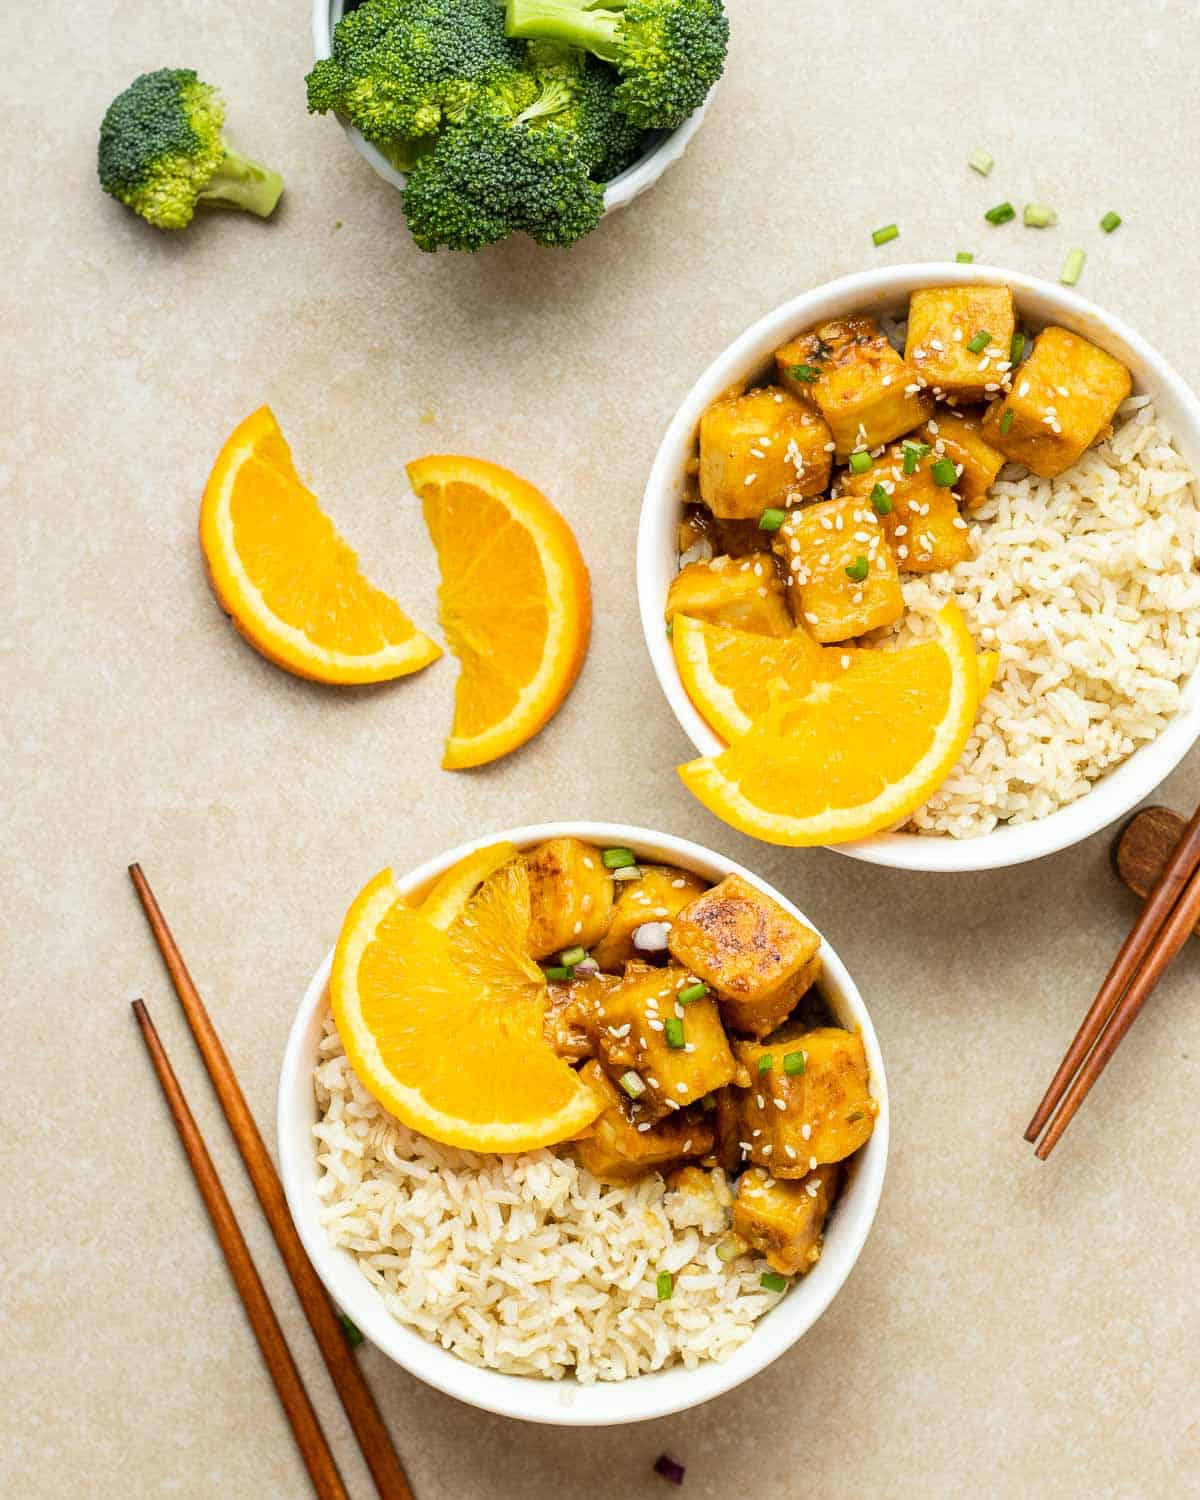 2 bowls of rice served with orange tofu with chopsticks. There is broccoli floret and orange slices in the background.